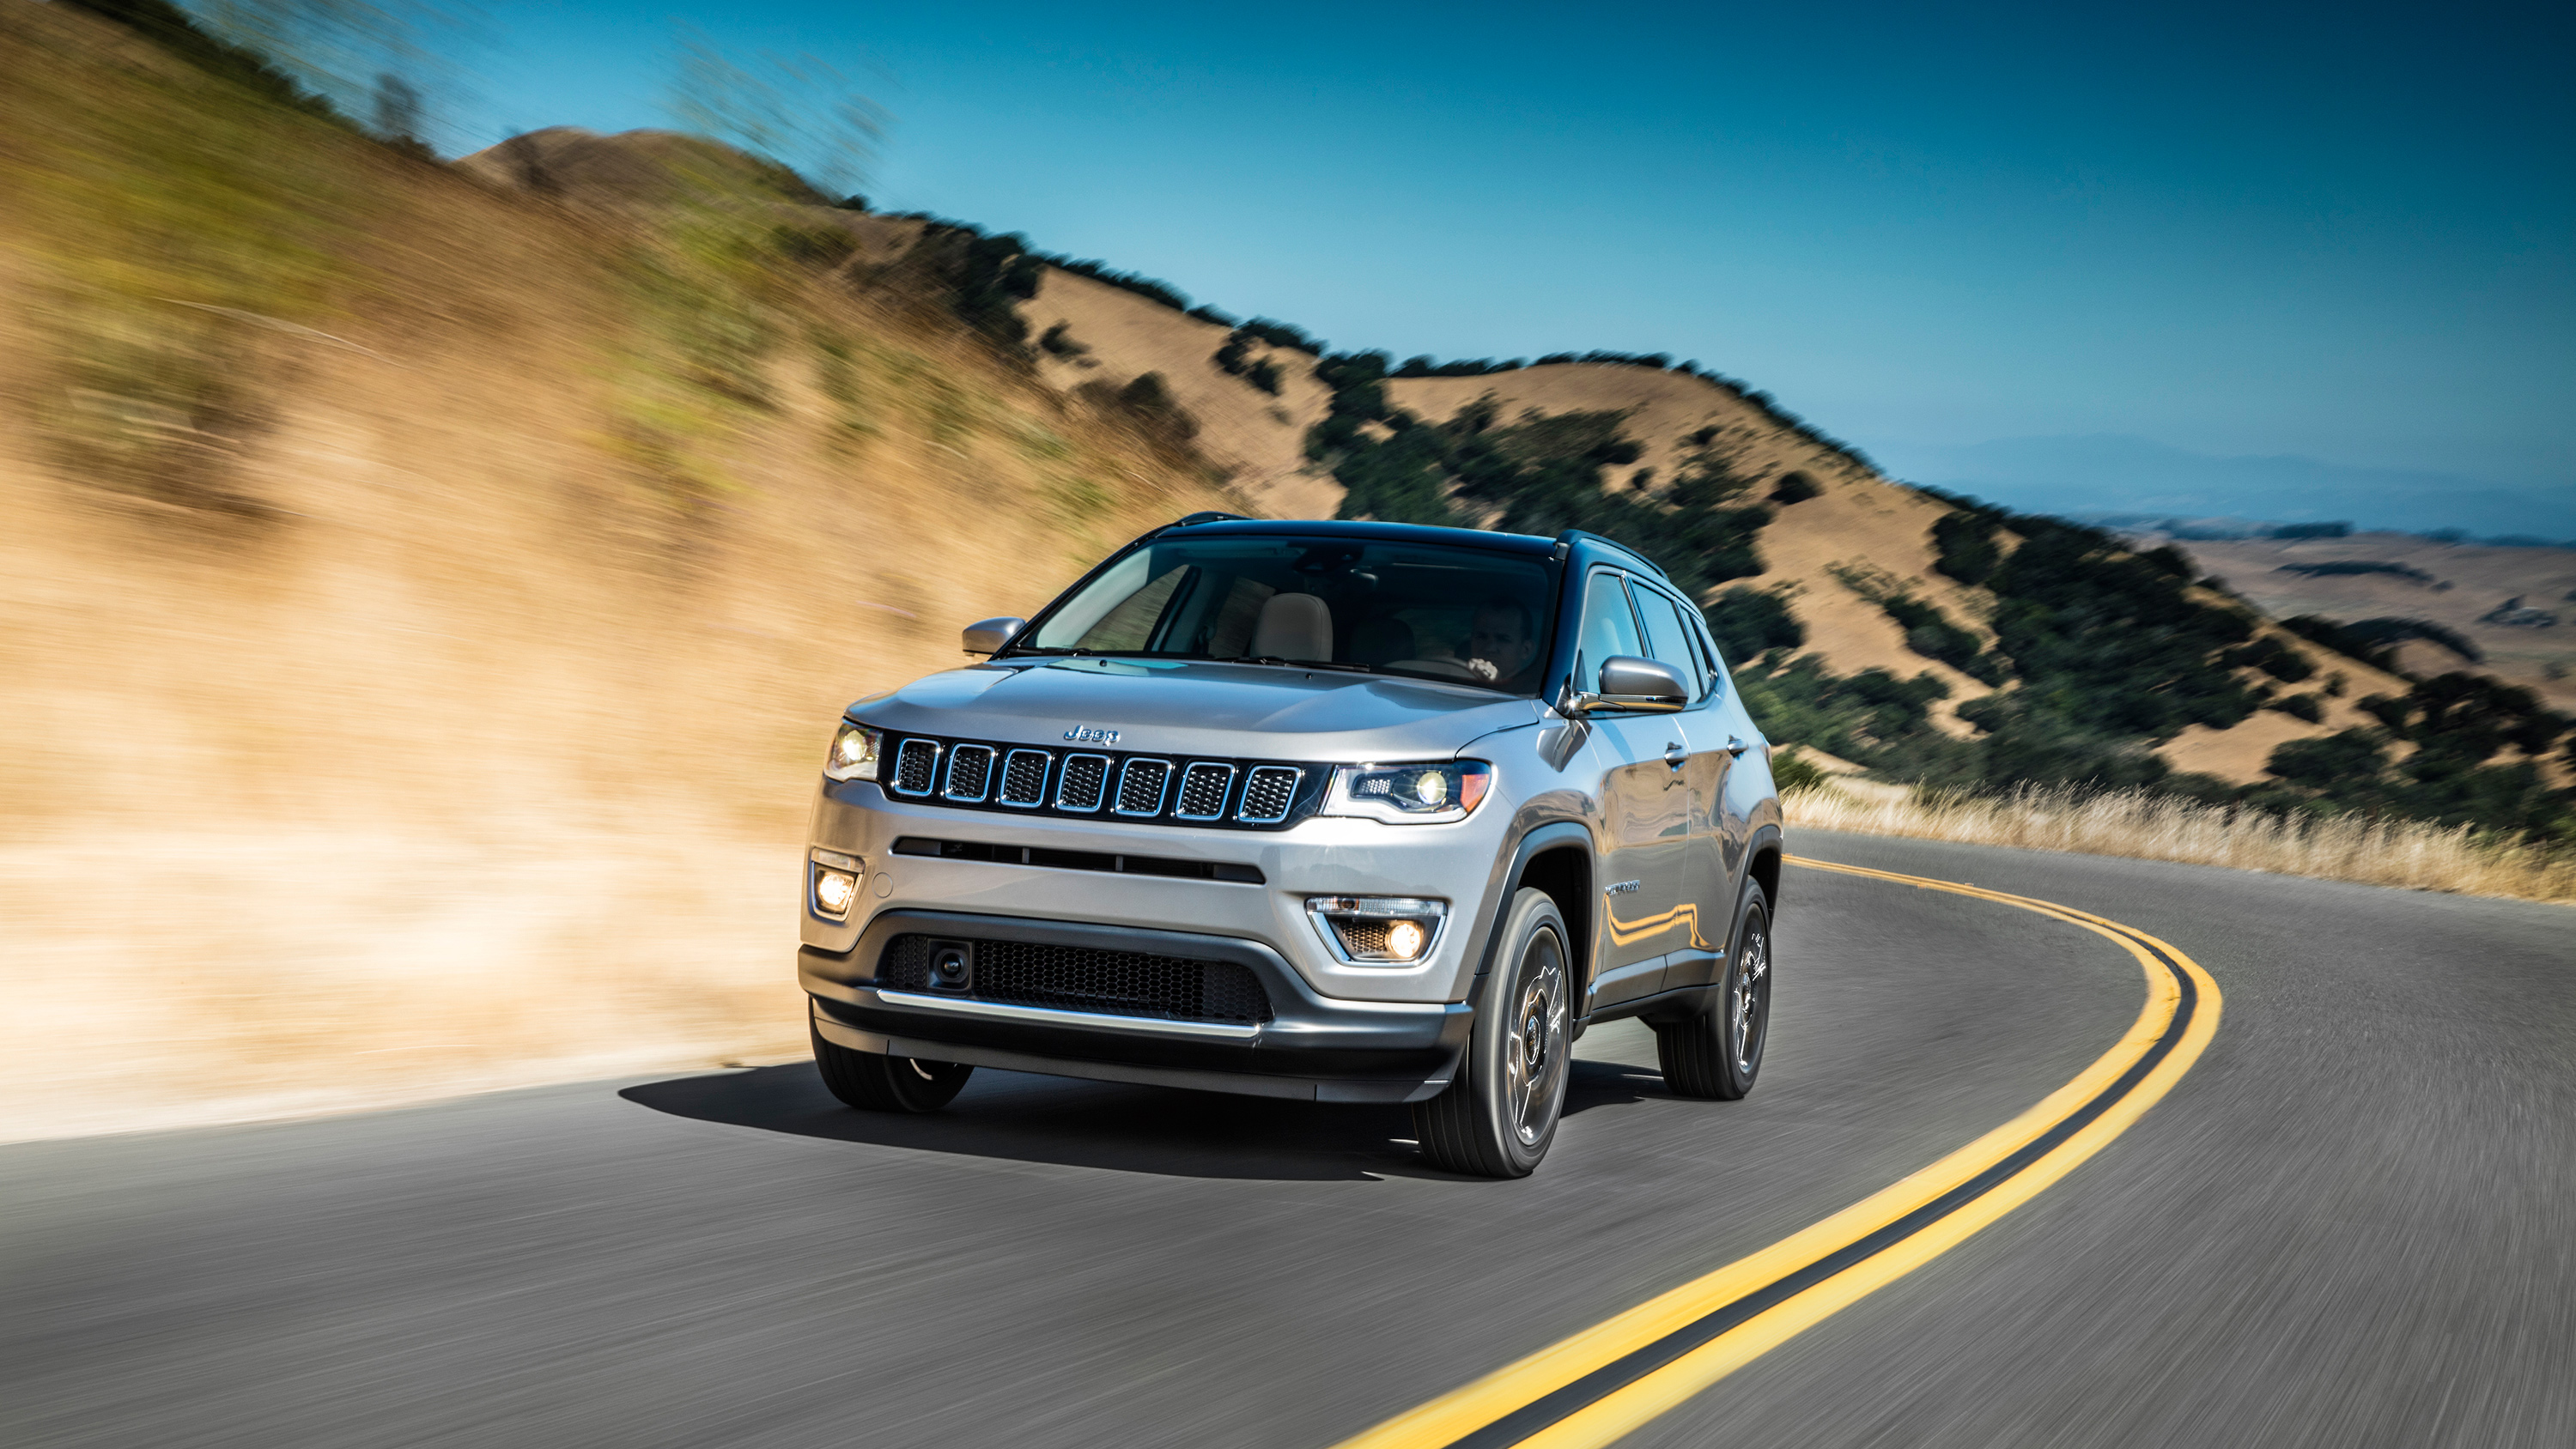 2017 Jeep Compass Limited Wallpaper Hd Car Wallpapers Id 7454